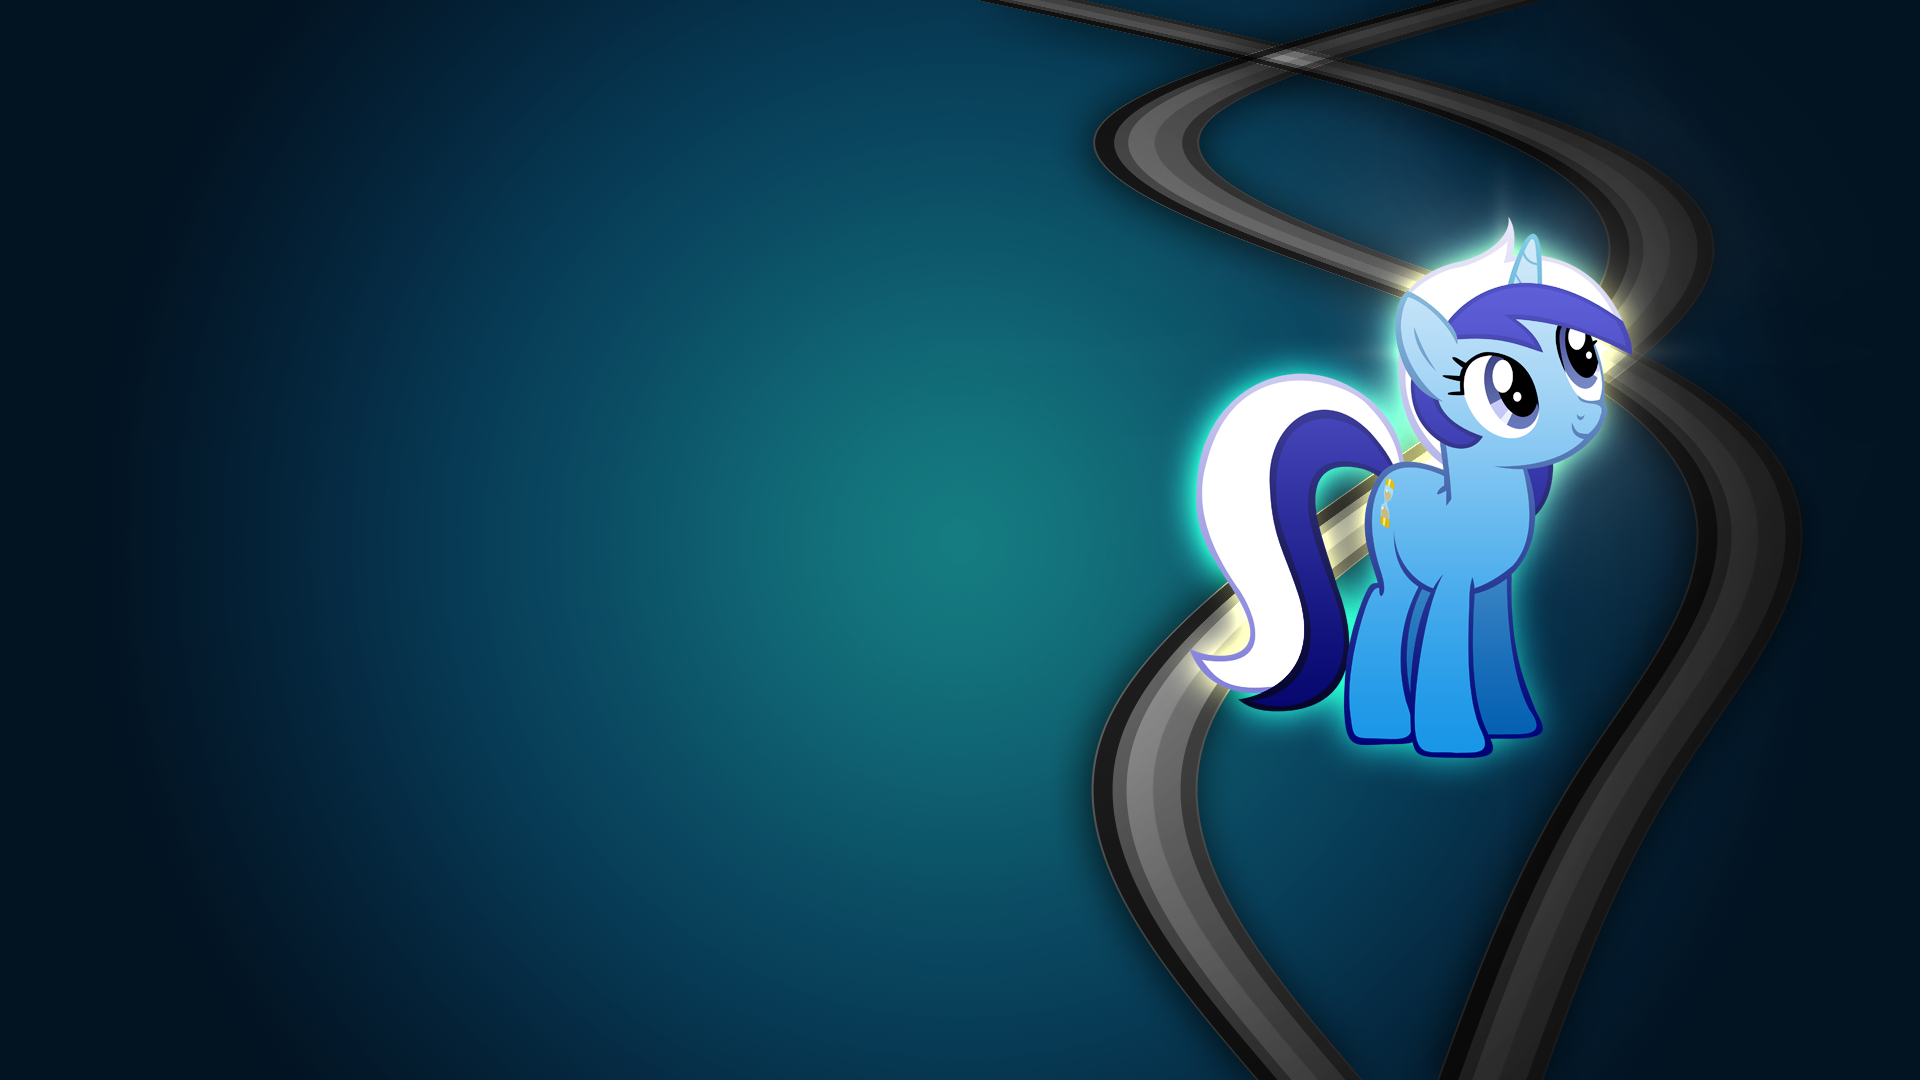 BG Characters wallpapers Part 2   Background Ponies Wallpaper 1920x1080